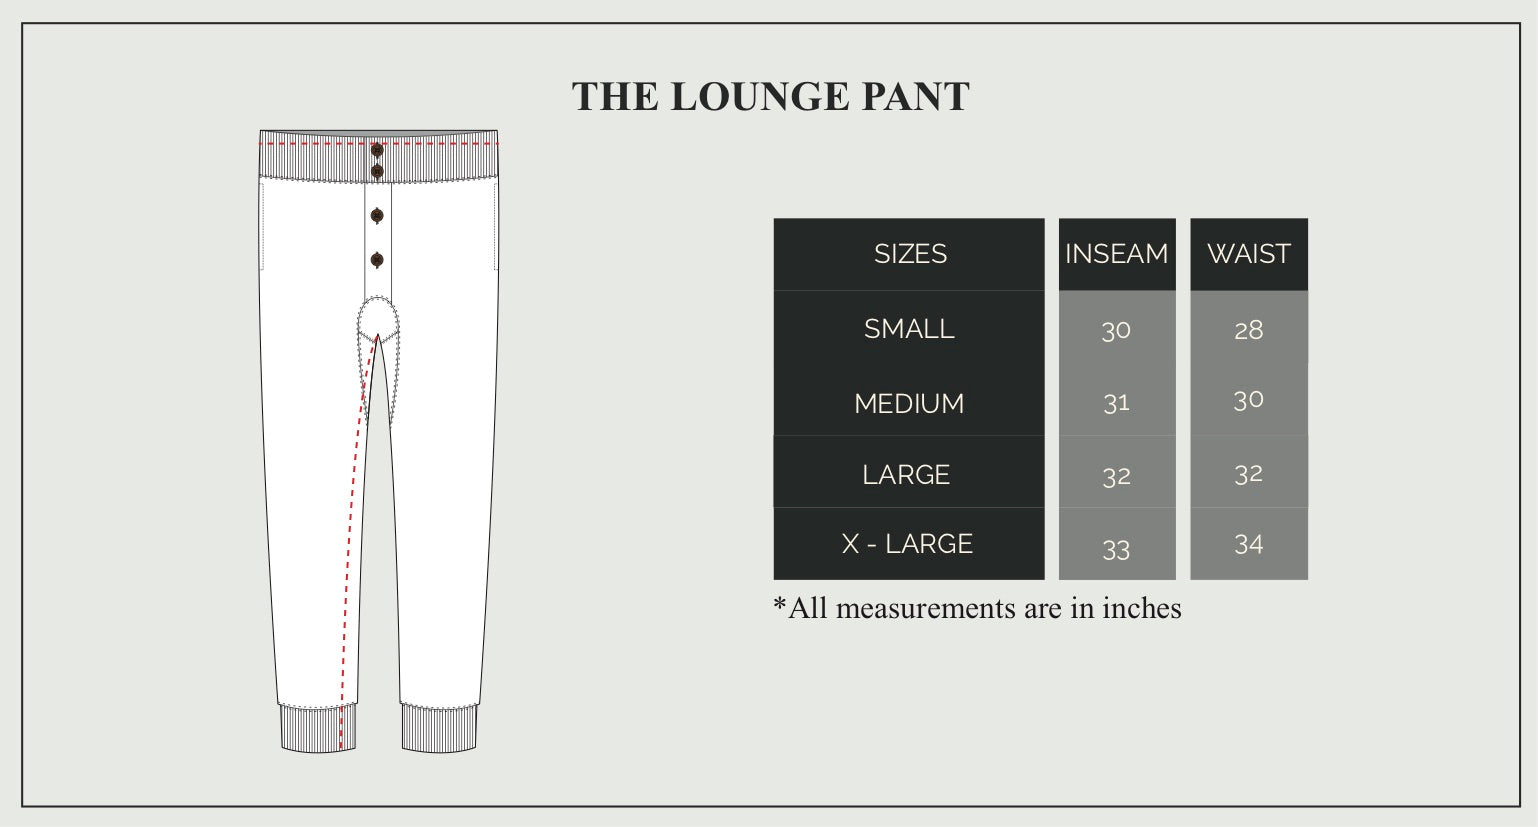 Lounge Pant Size Guide